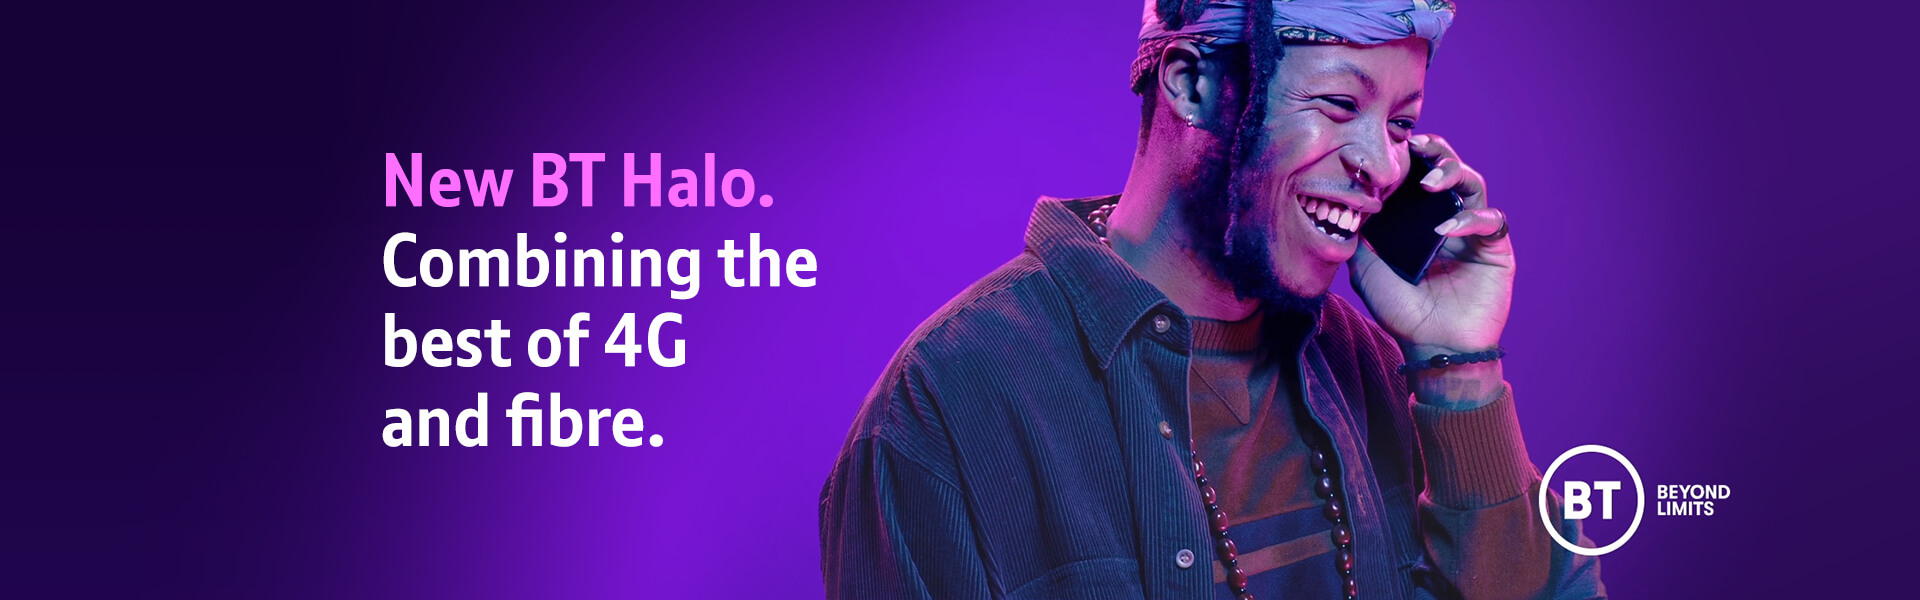 BT Halo. Giving you complete certainty in your home connection, by combining 4G and fibre broadband.